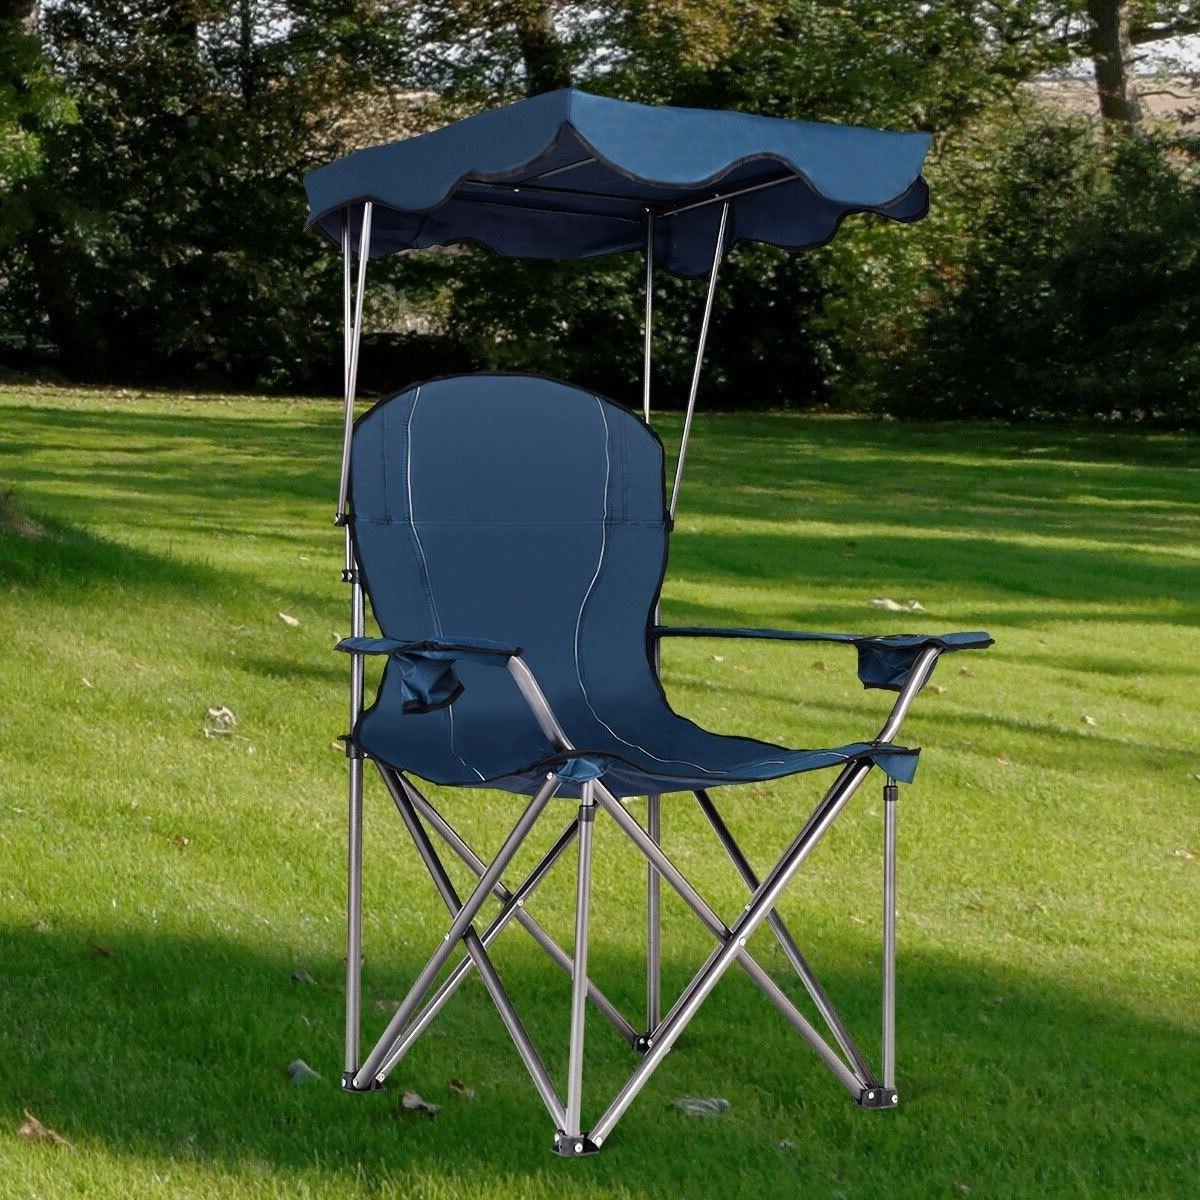 Outdoor Beach Chair with Cup Holders